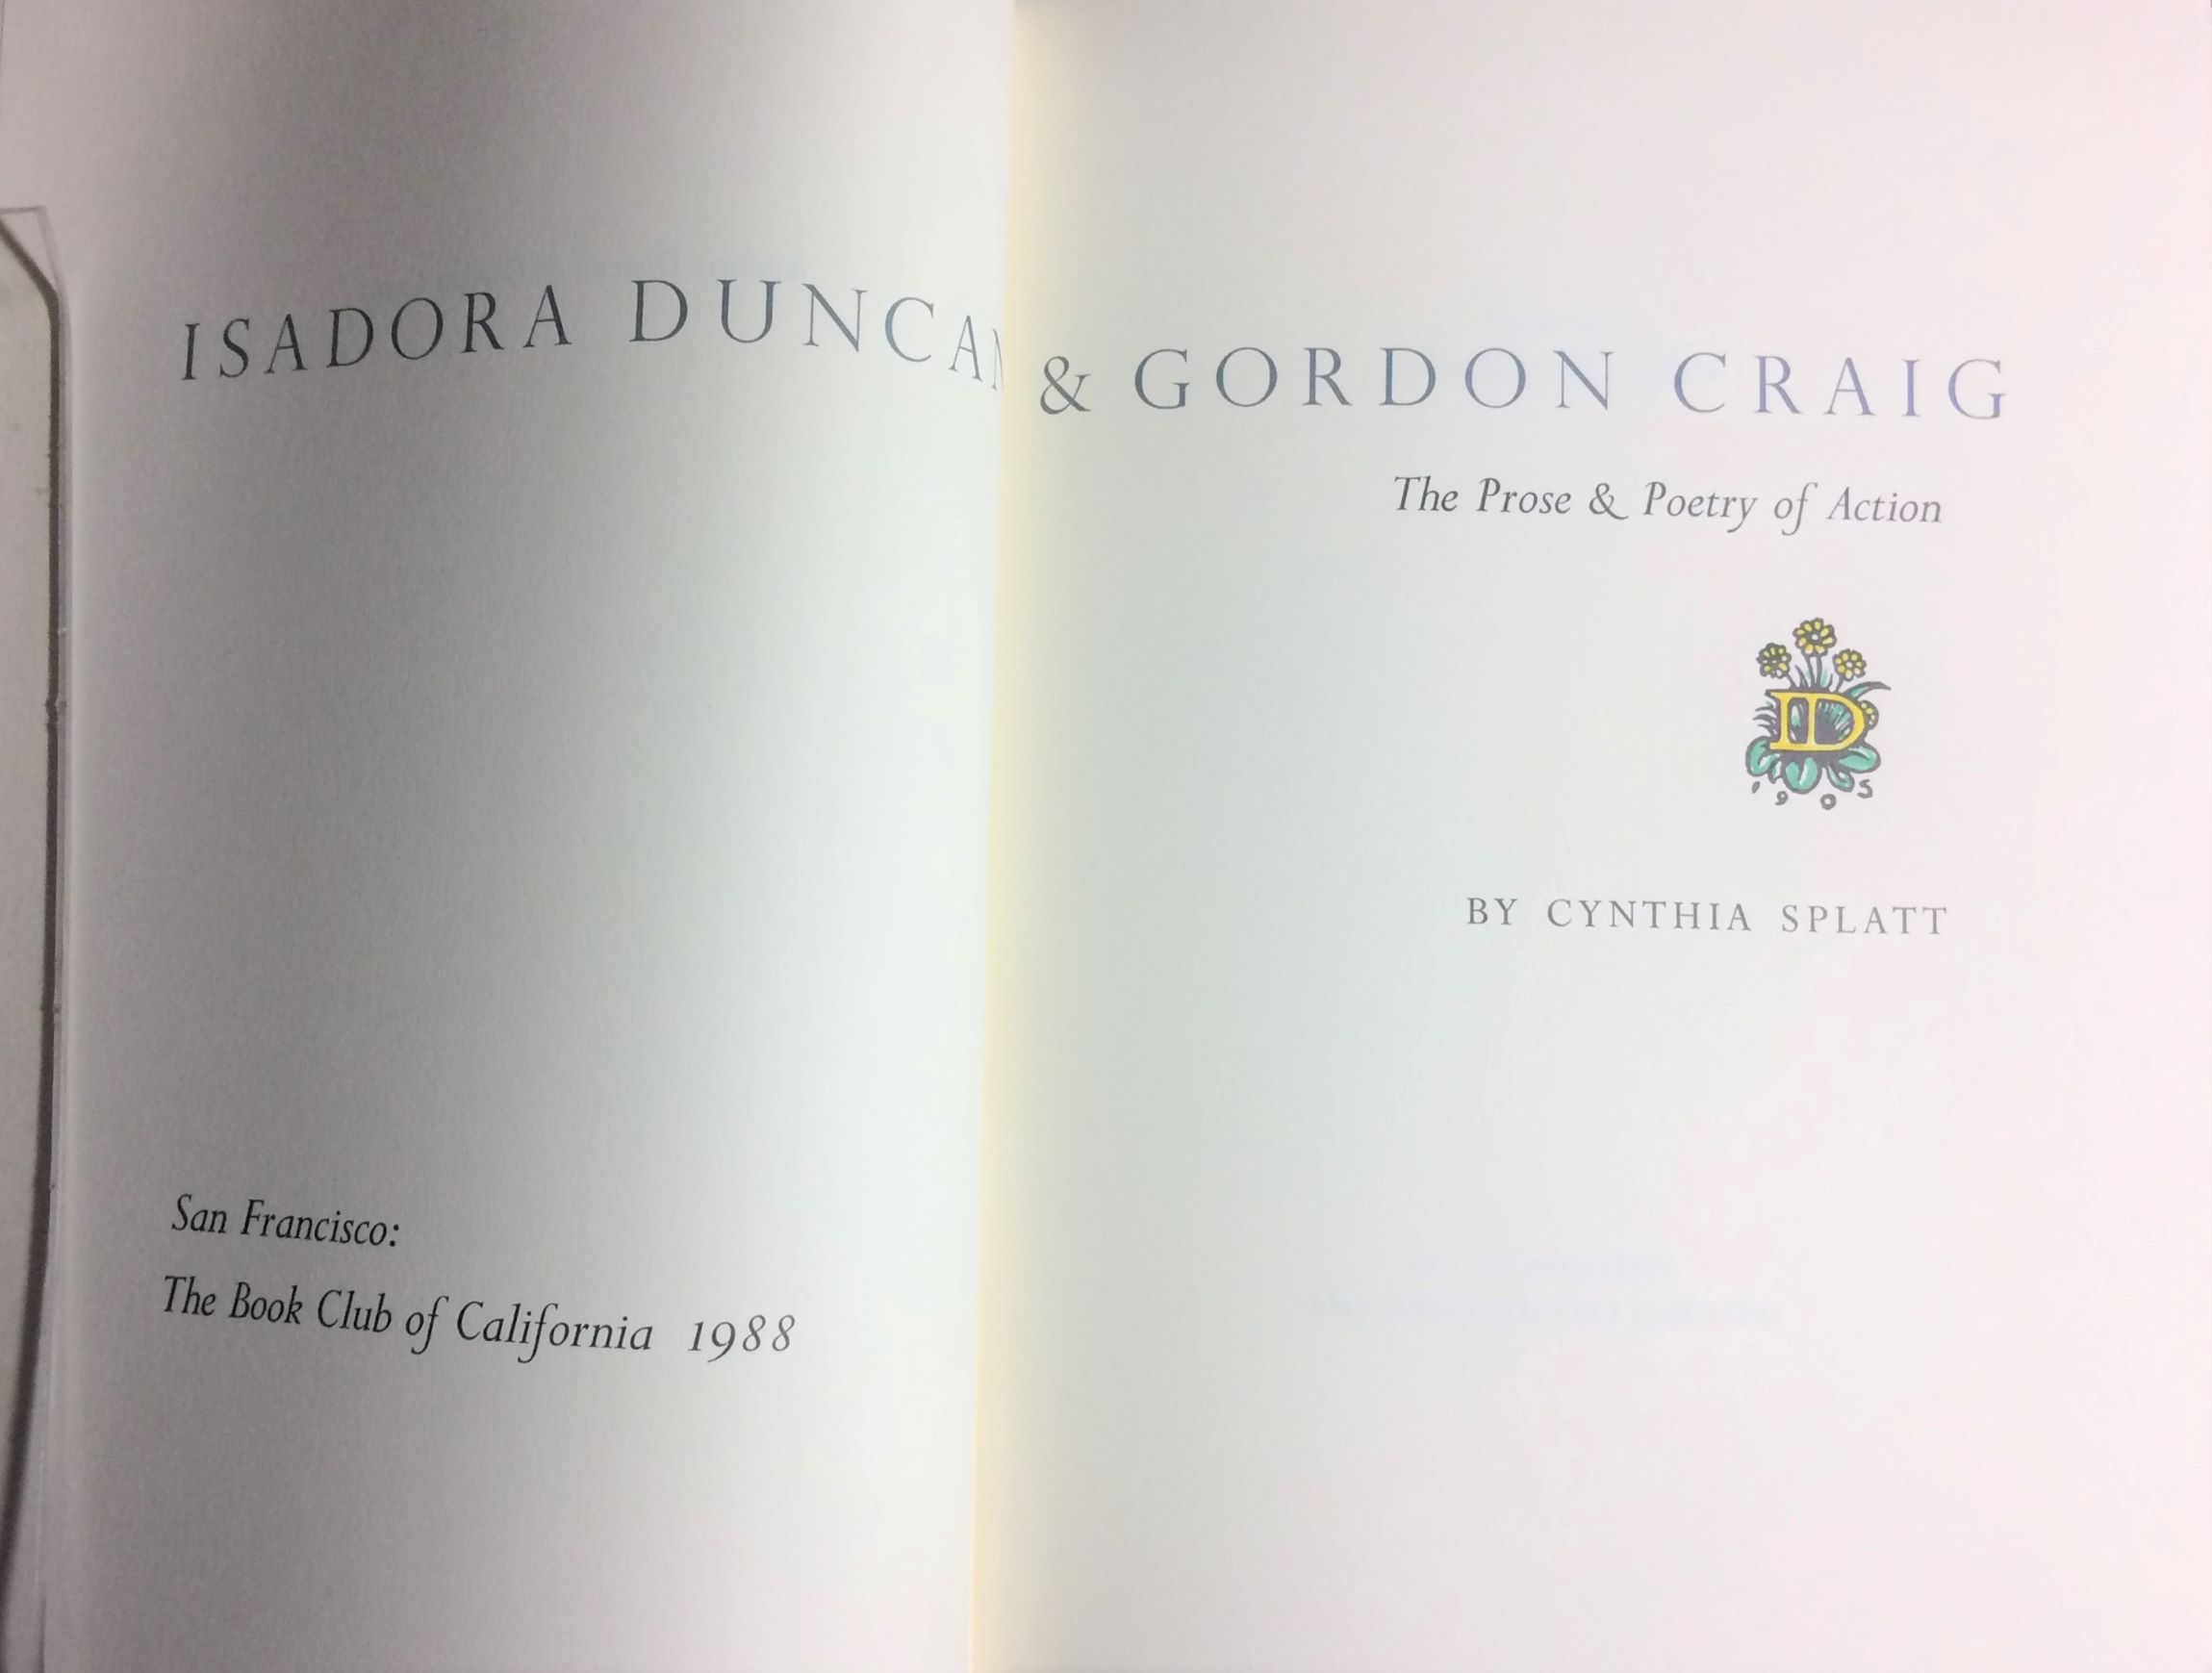 Image for Isadora Duncan & Gordon Craig: The Prose & Poetry of Action.